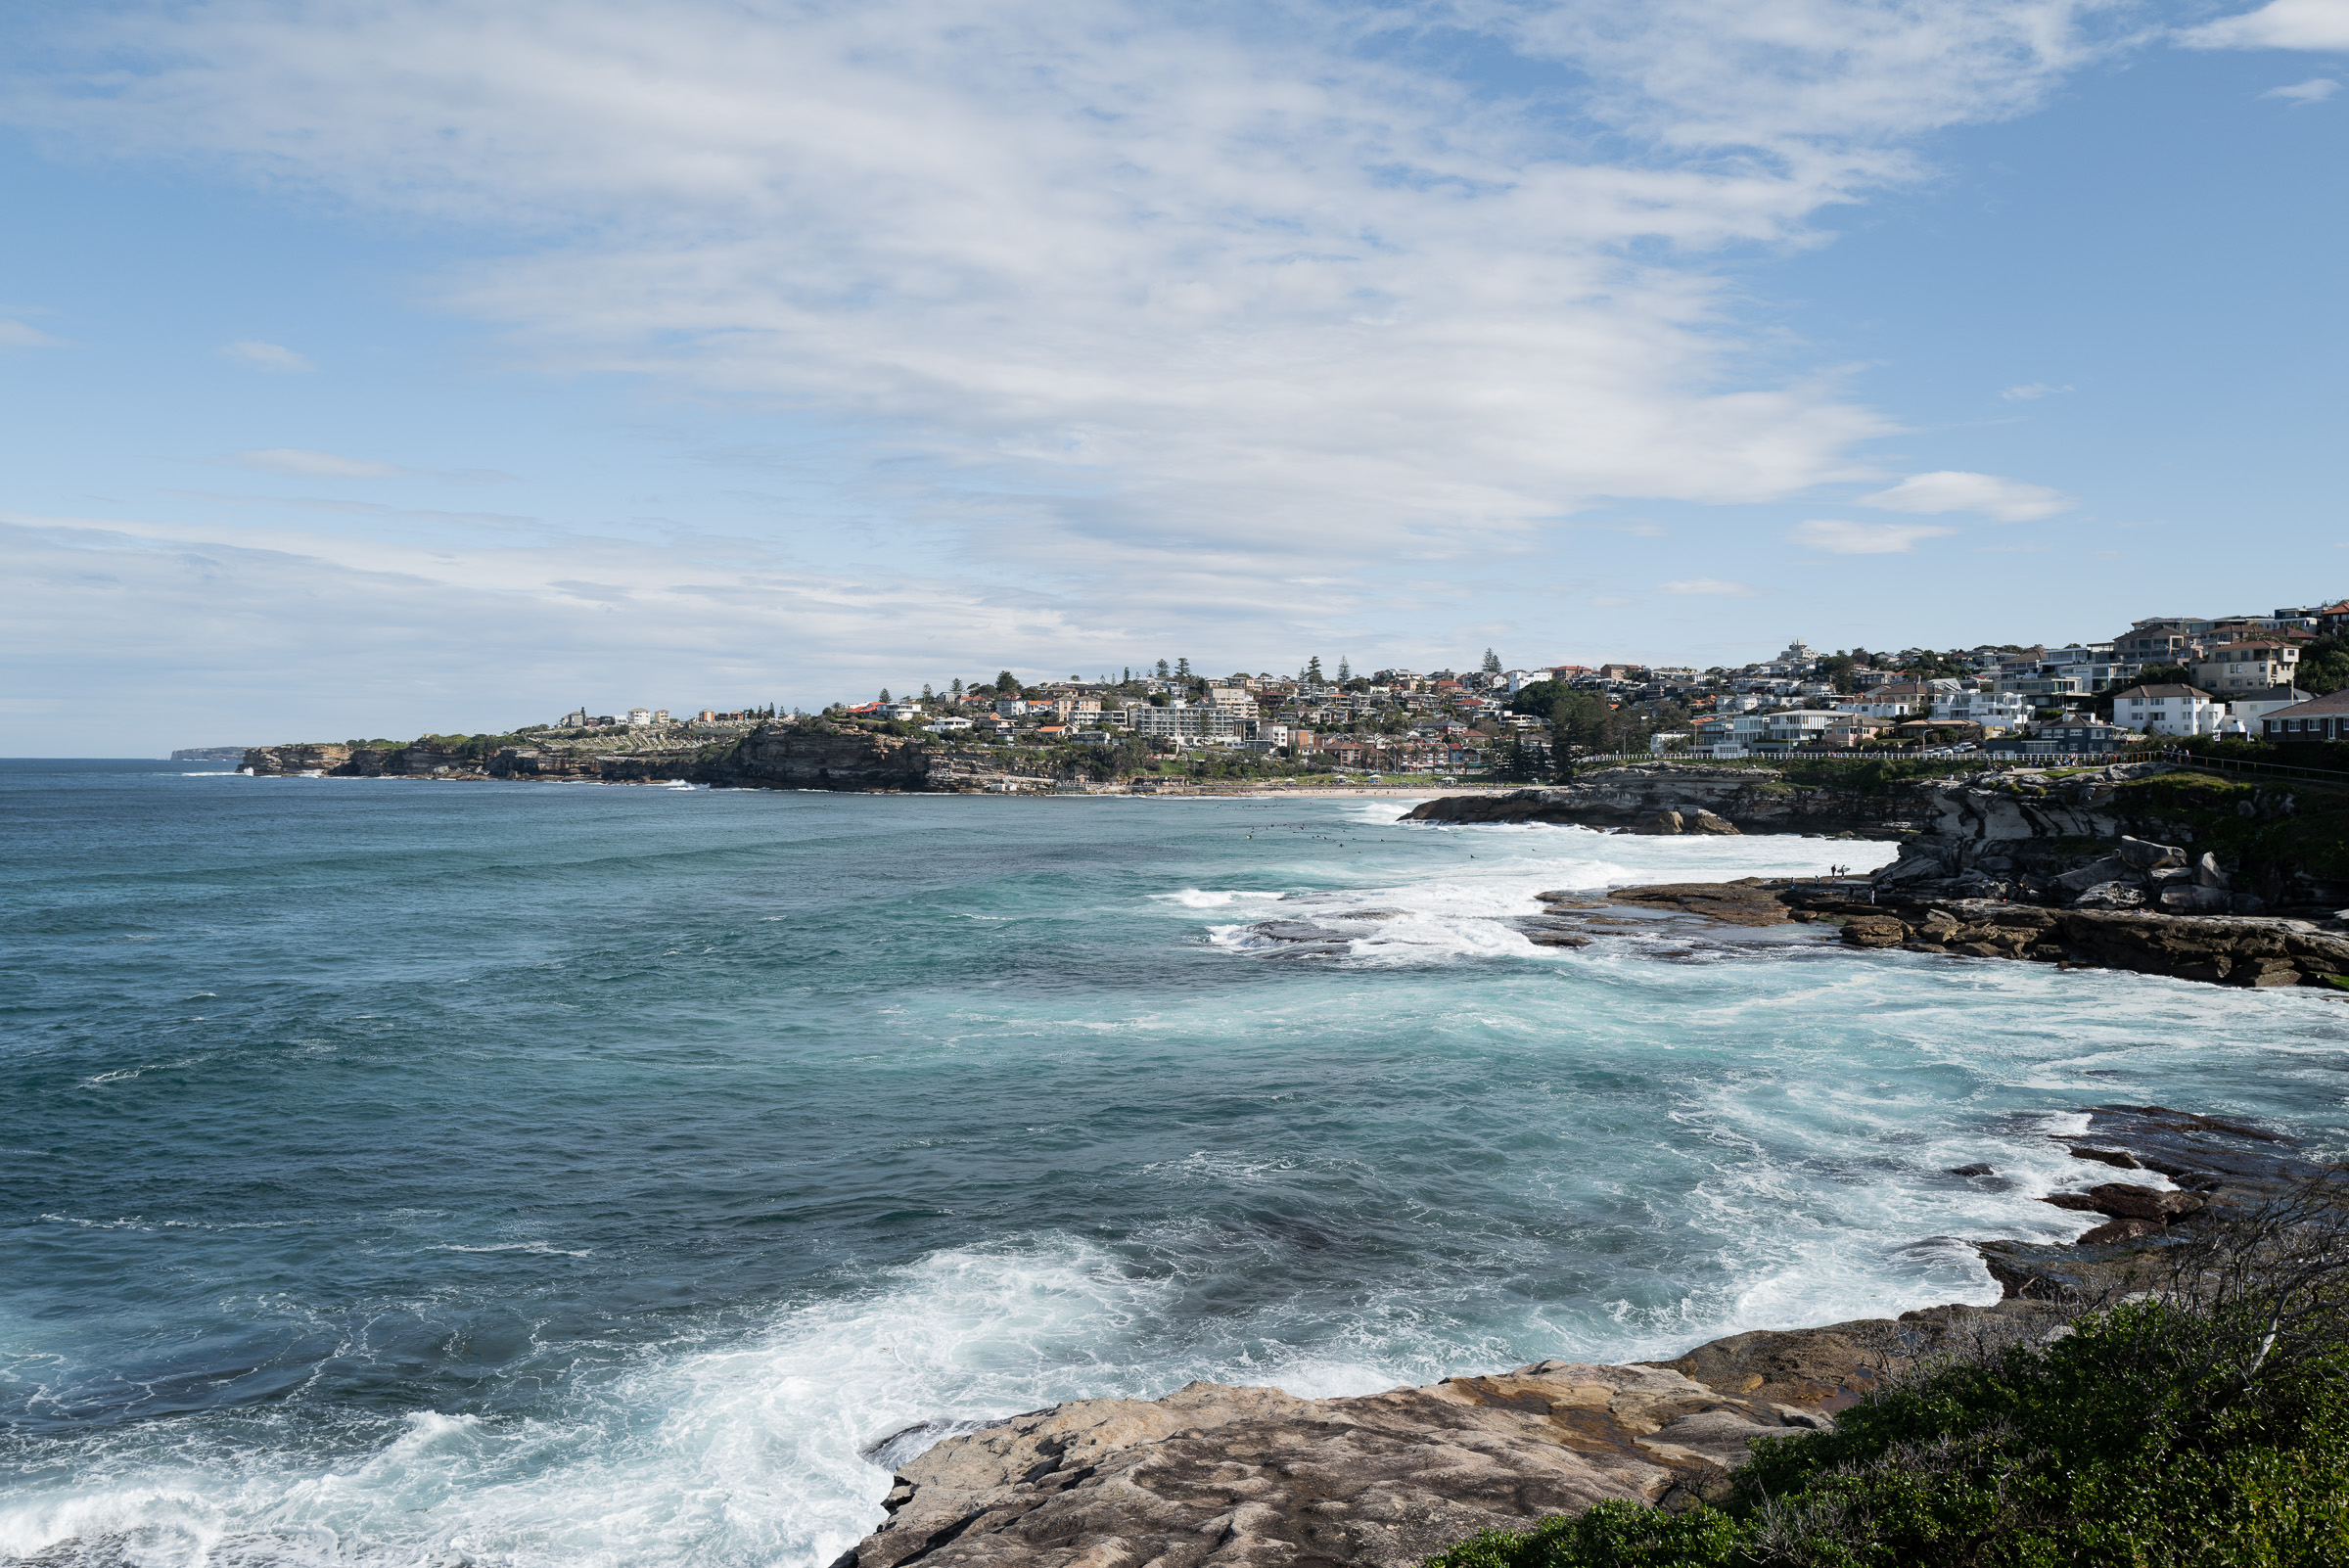 Leica Q2 Review | Premium design, beautiful image quality - HEY GENTS - Tamarama Beach